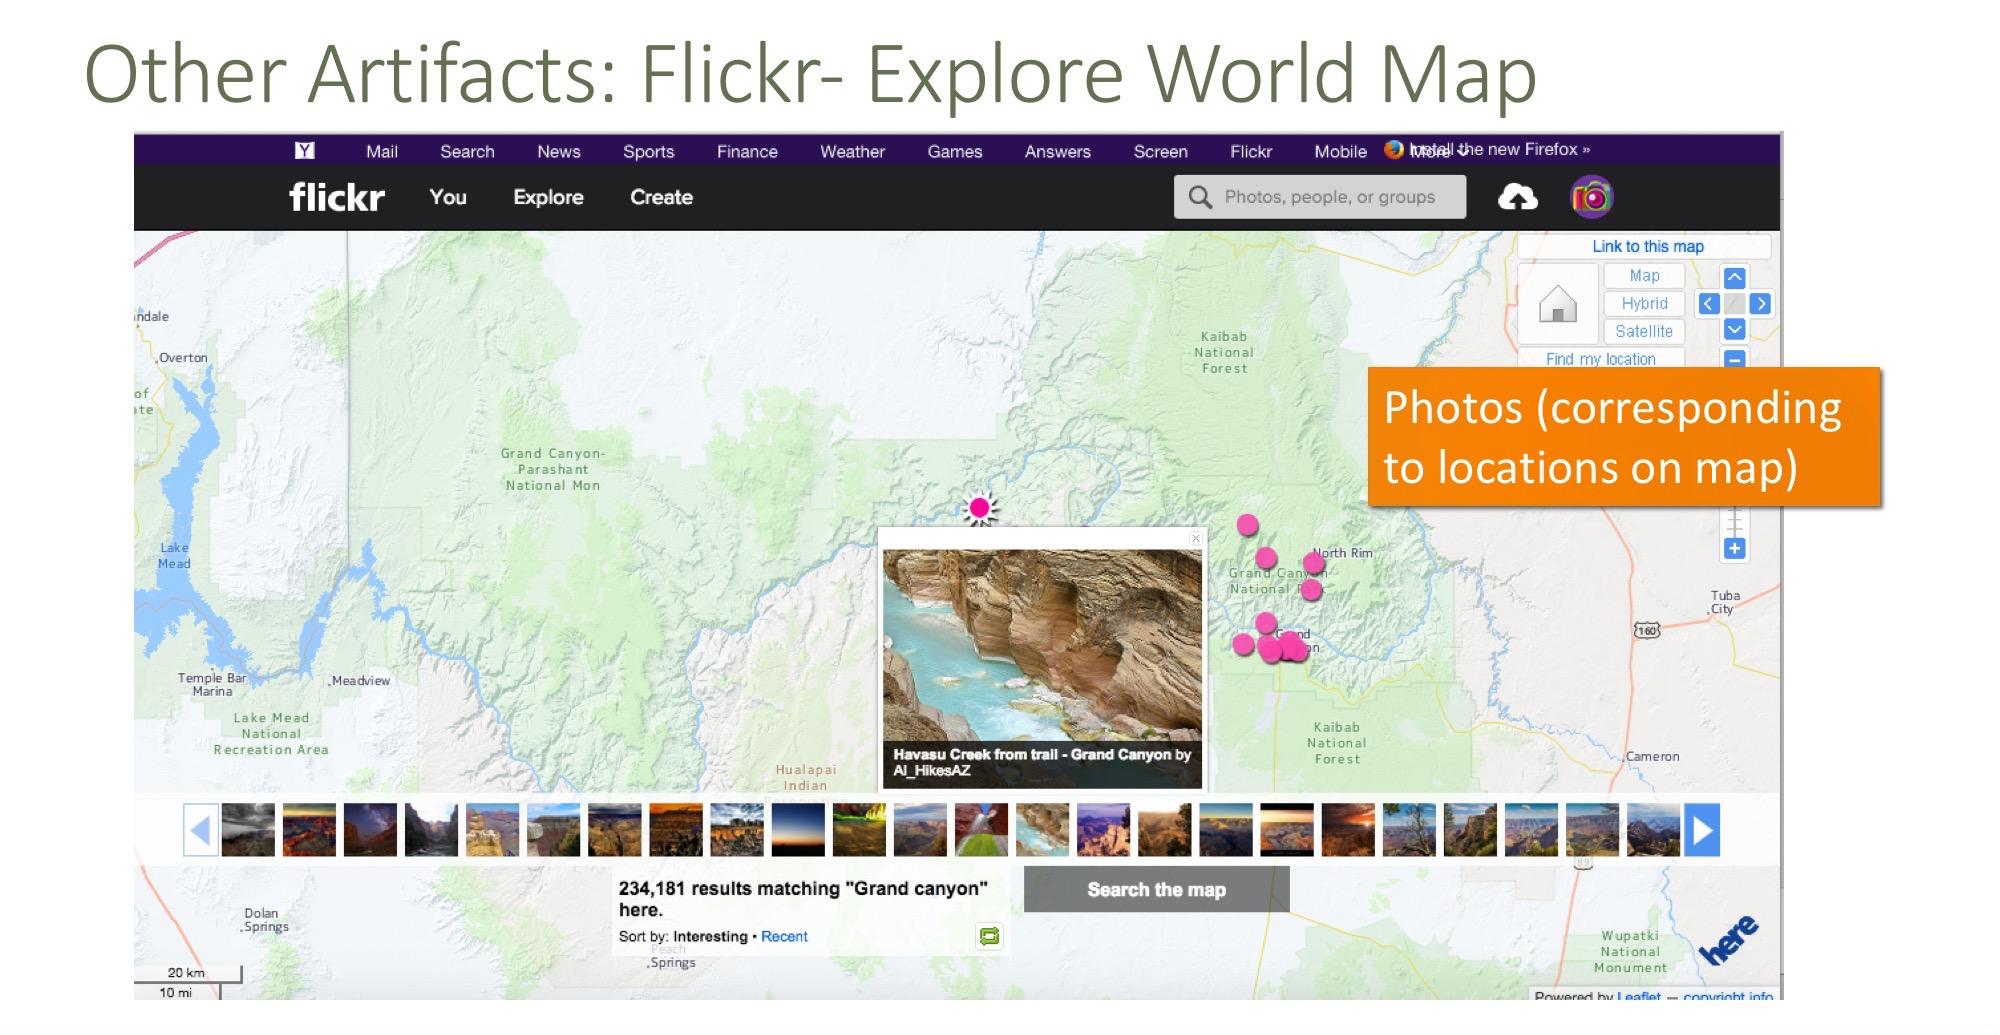 Flickr     Photos are marked on the map based on locations